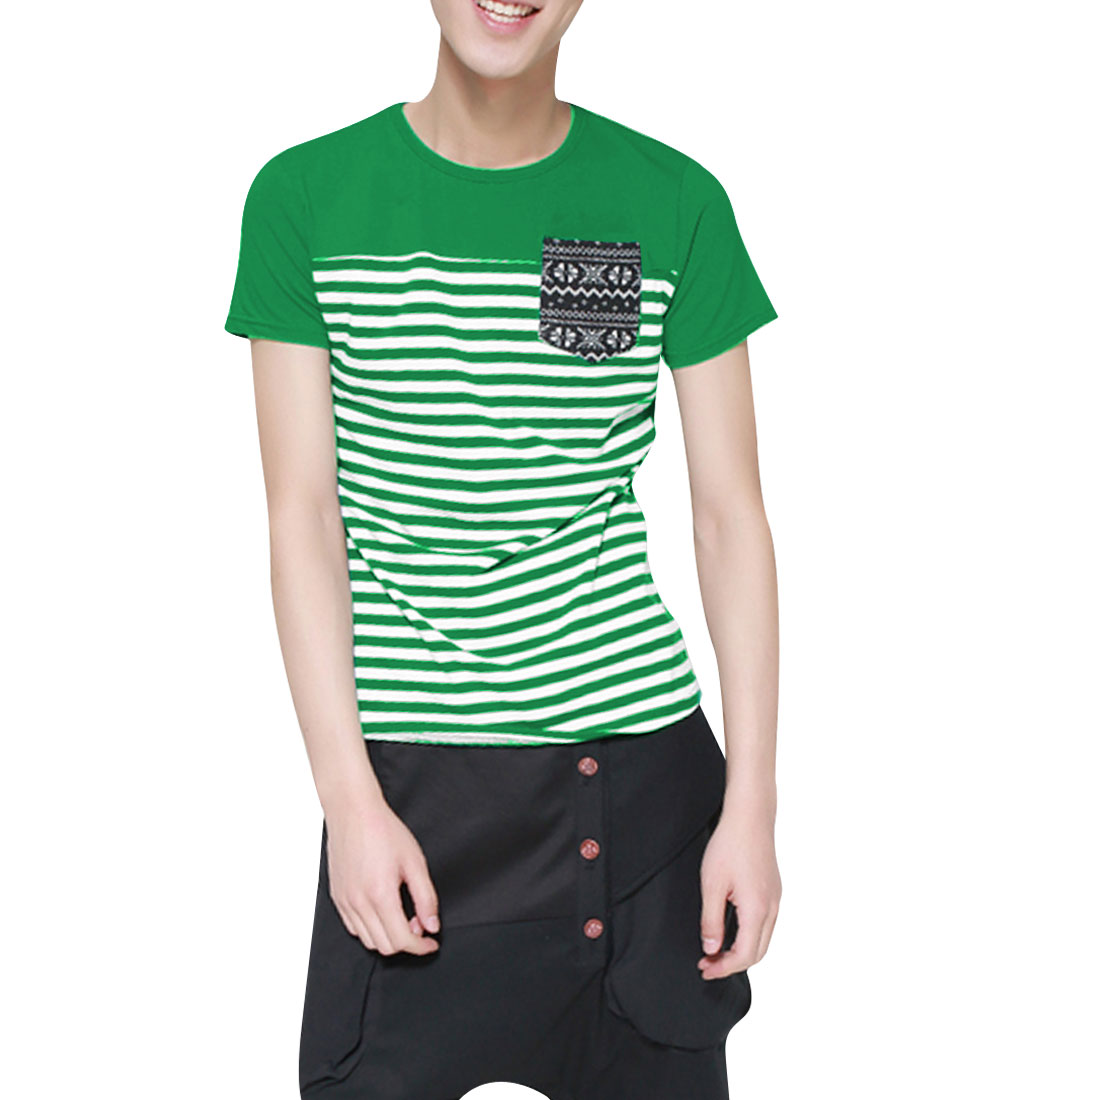 Man Round Neck Short Sleeves Striped Pocket Chic Shirt Green S